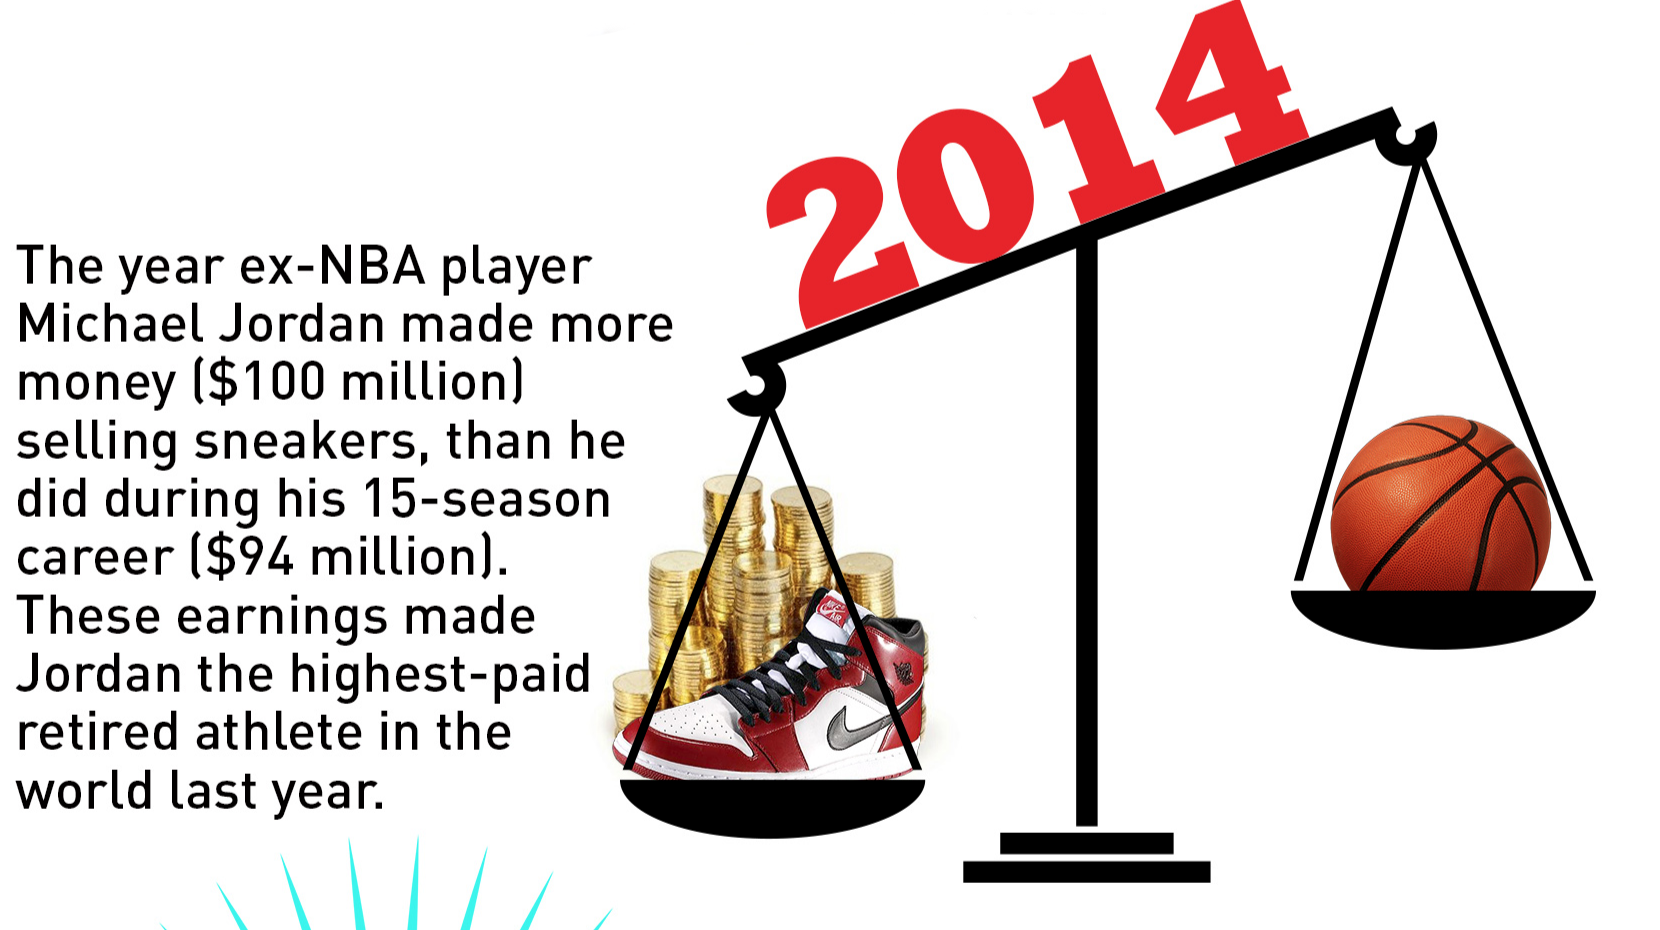 446afb51c67 Michael Jordan earned more in 2014 from sneakers than in playing career -  CBSSports.com